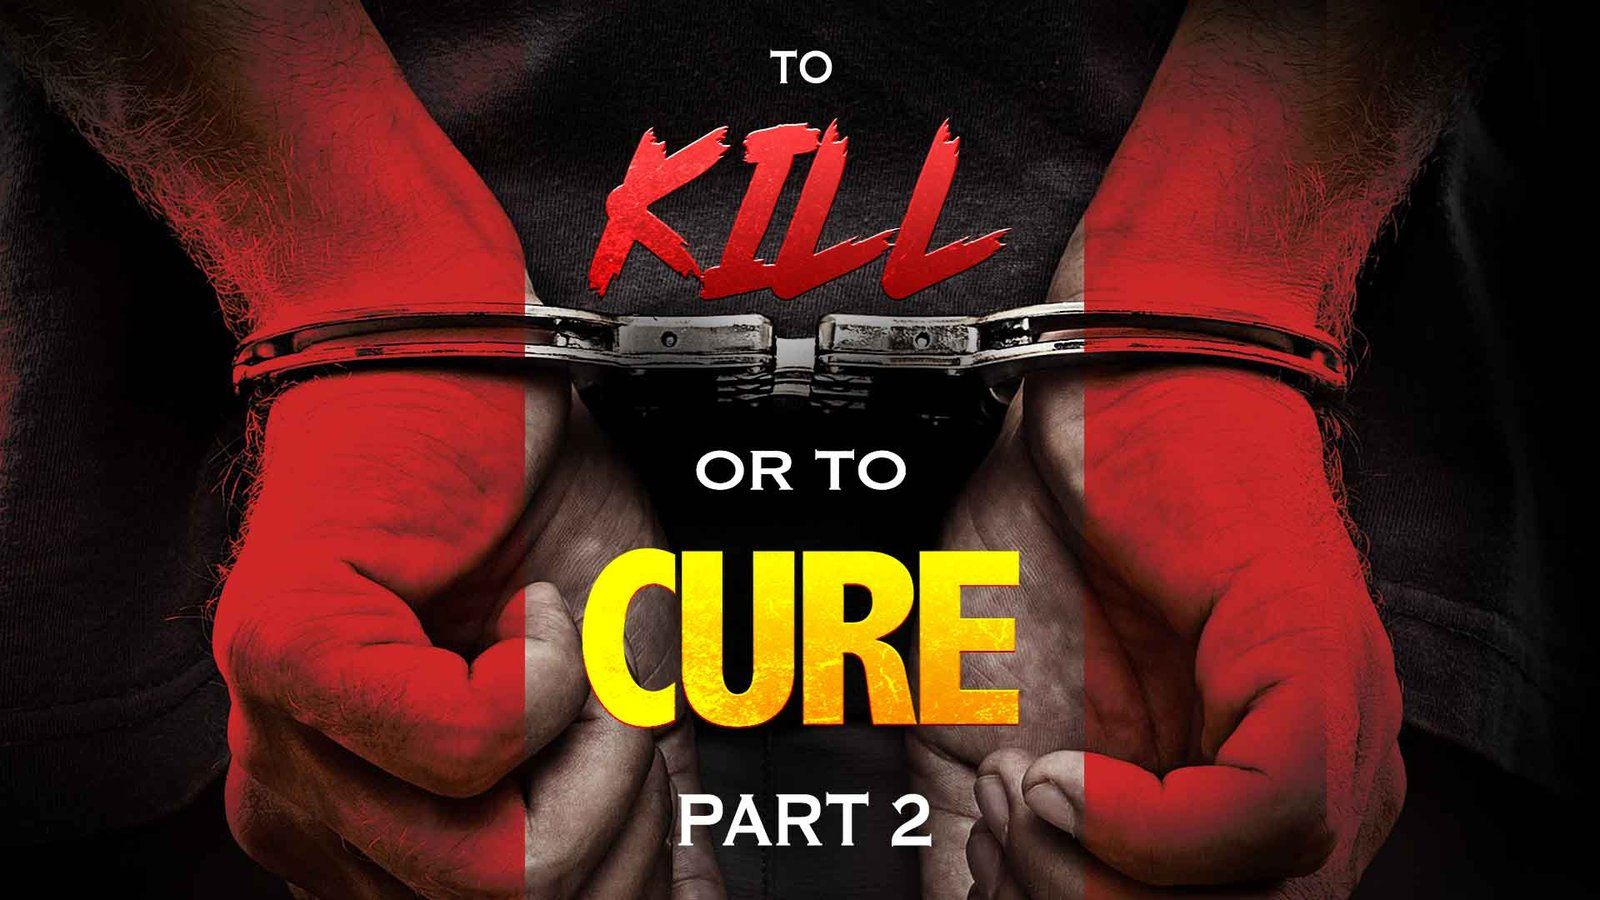 To Kill or To Cure: Part 2